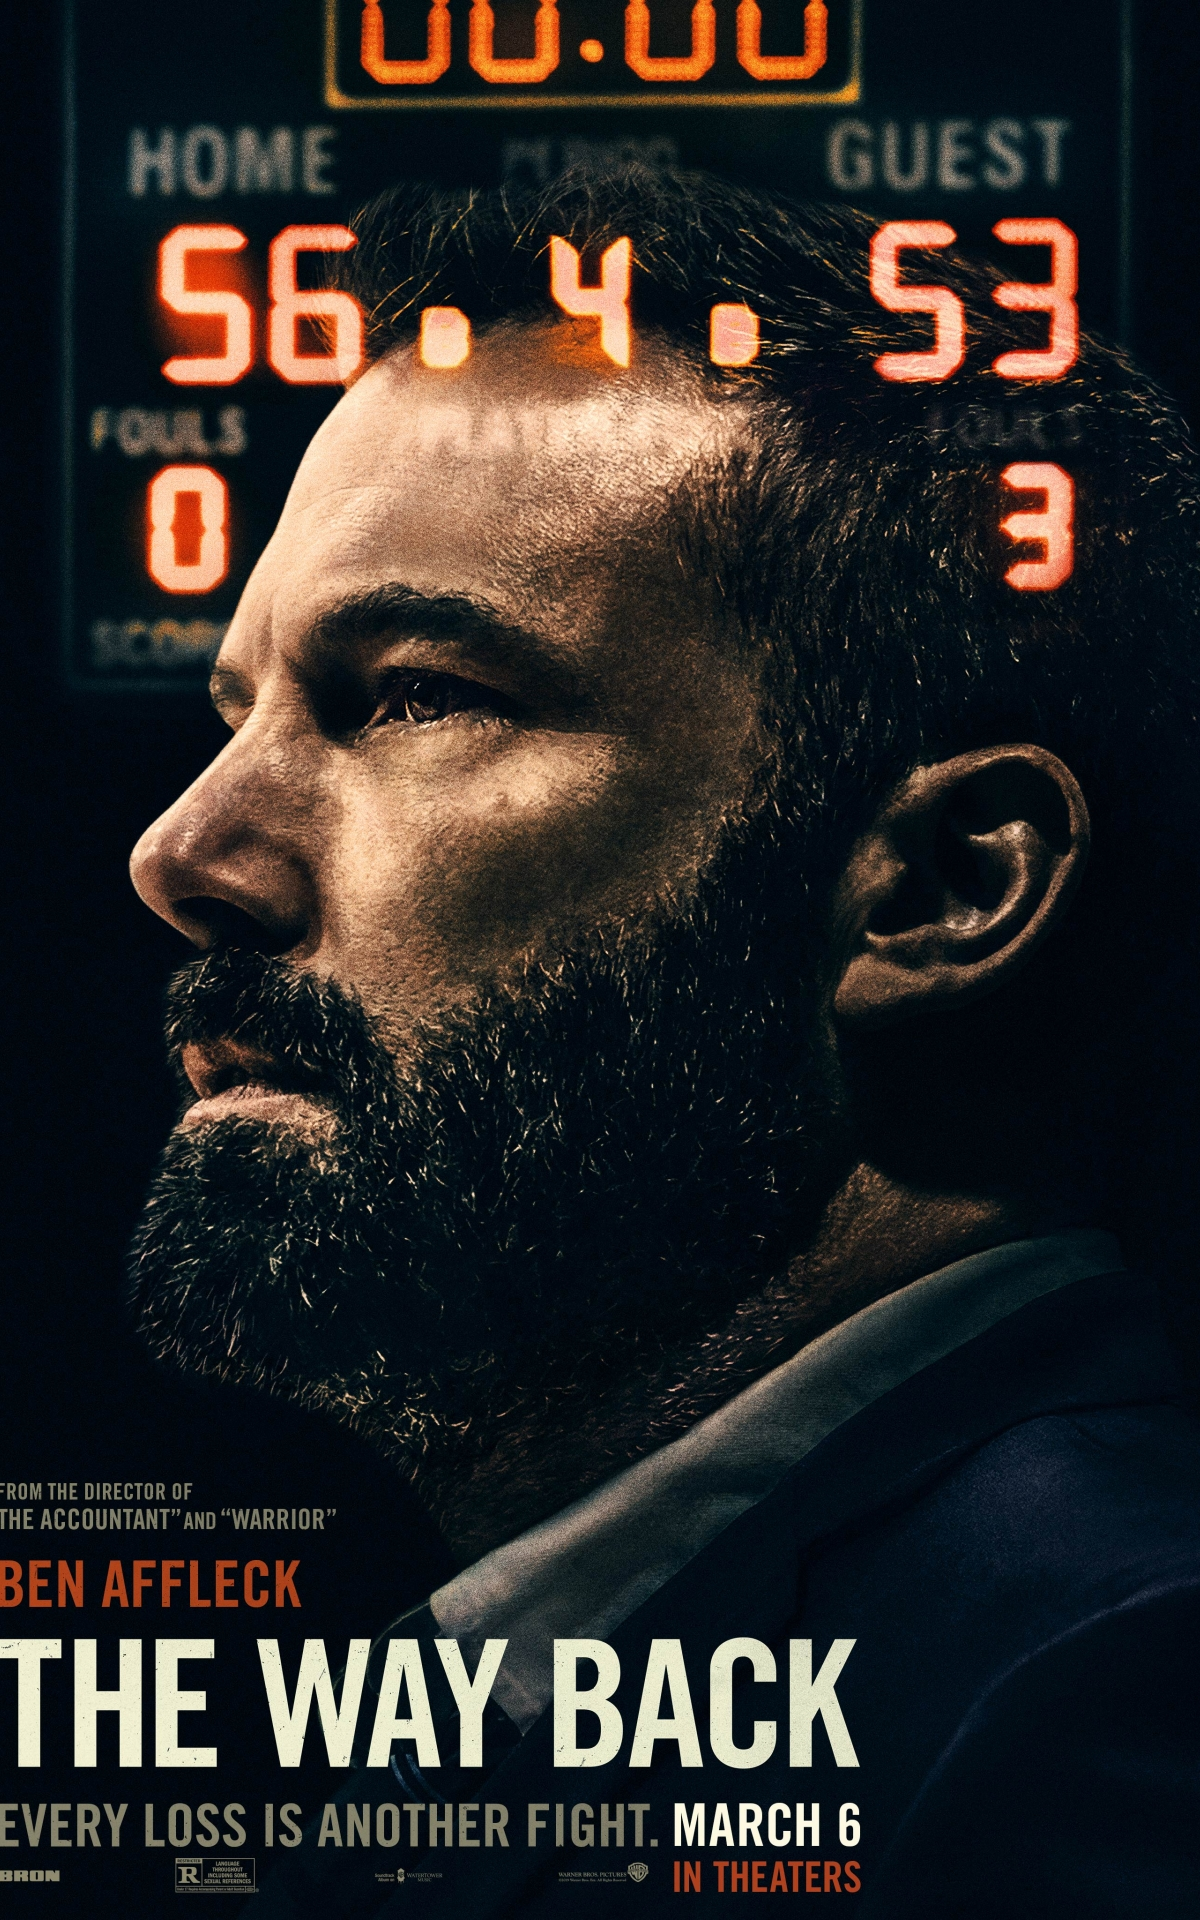 download The Way Back 2020 IMDb [2764x4096] for your Desktop 1200x1920